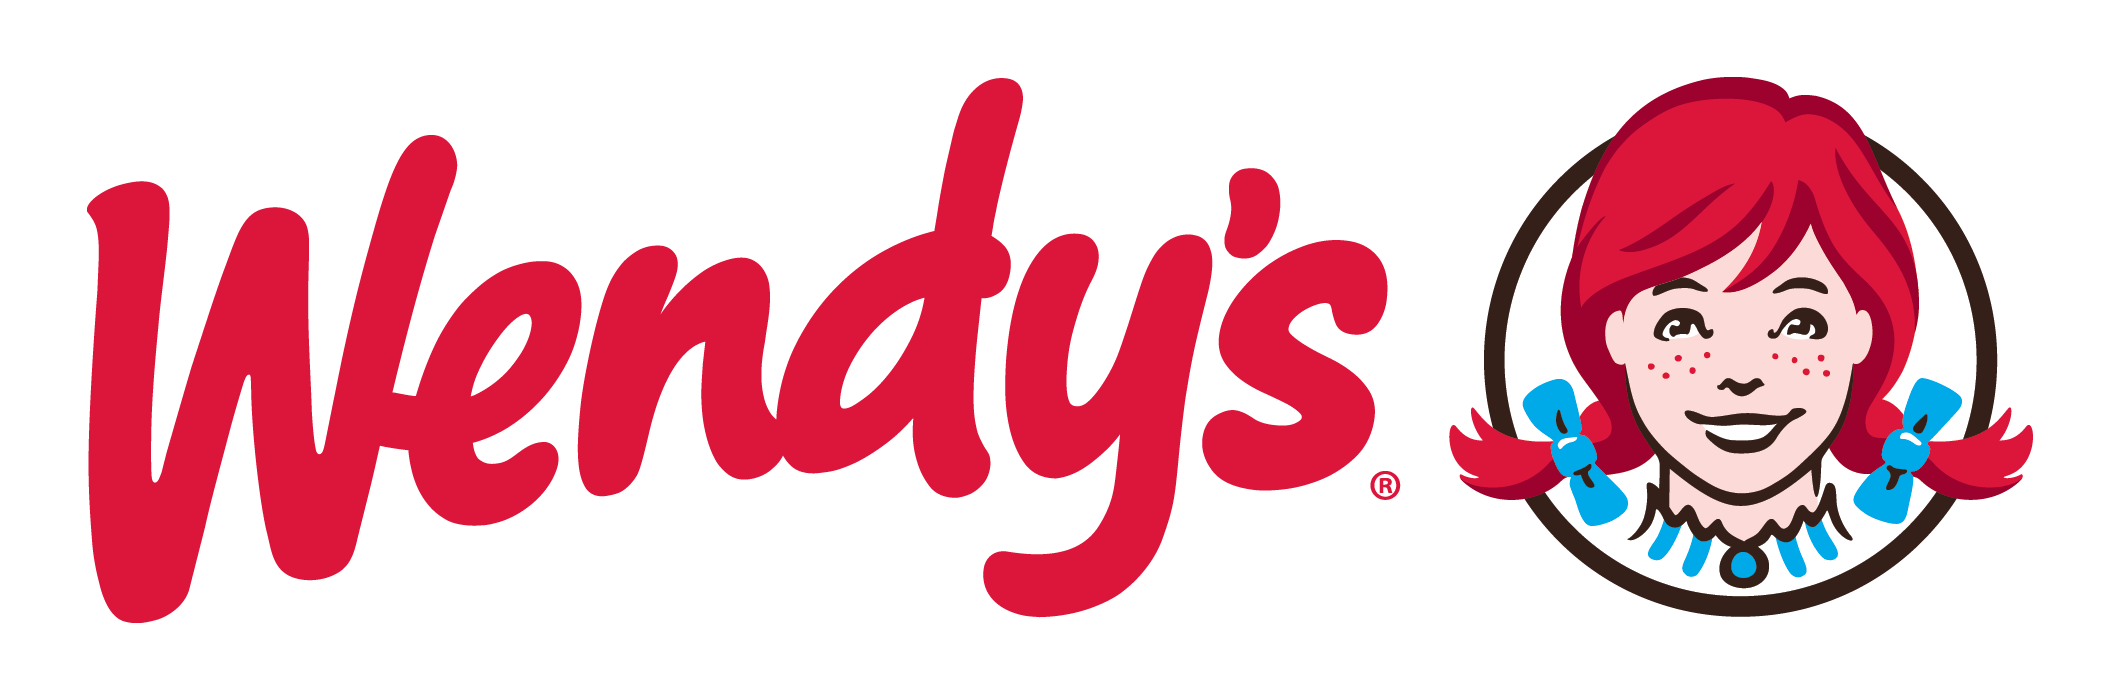 Wendy's Logo - Wendys Logo, Wendys Symbol, Meaning, History and Evolution